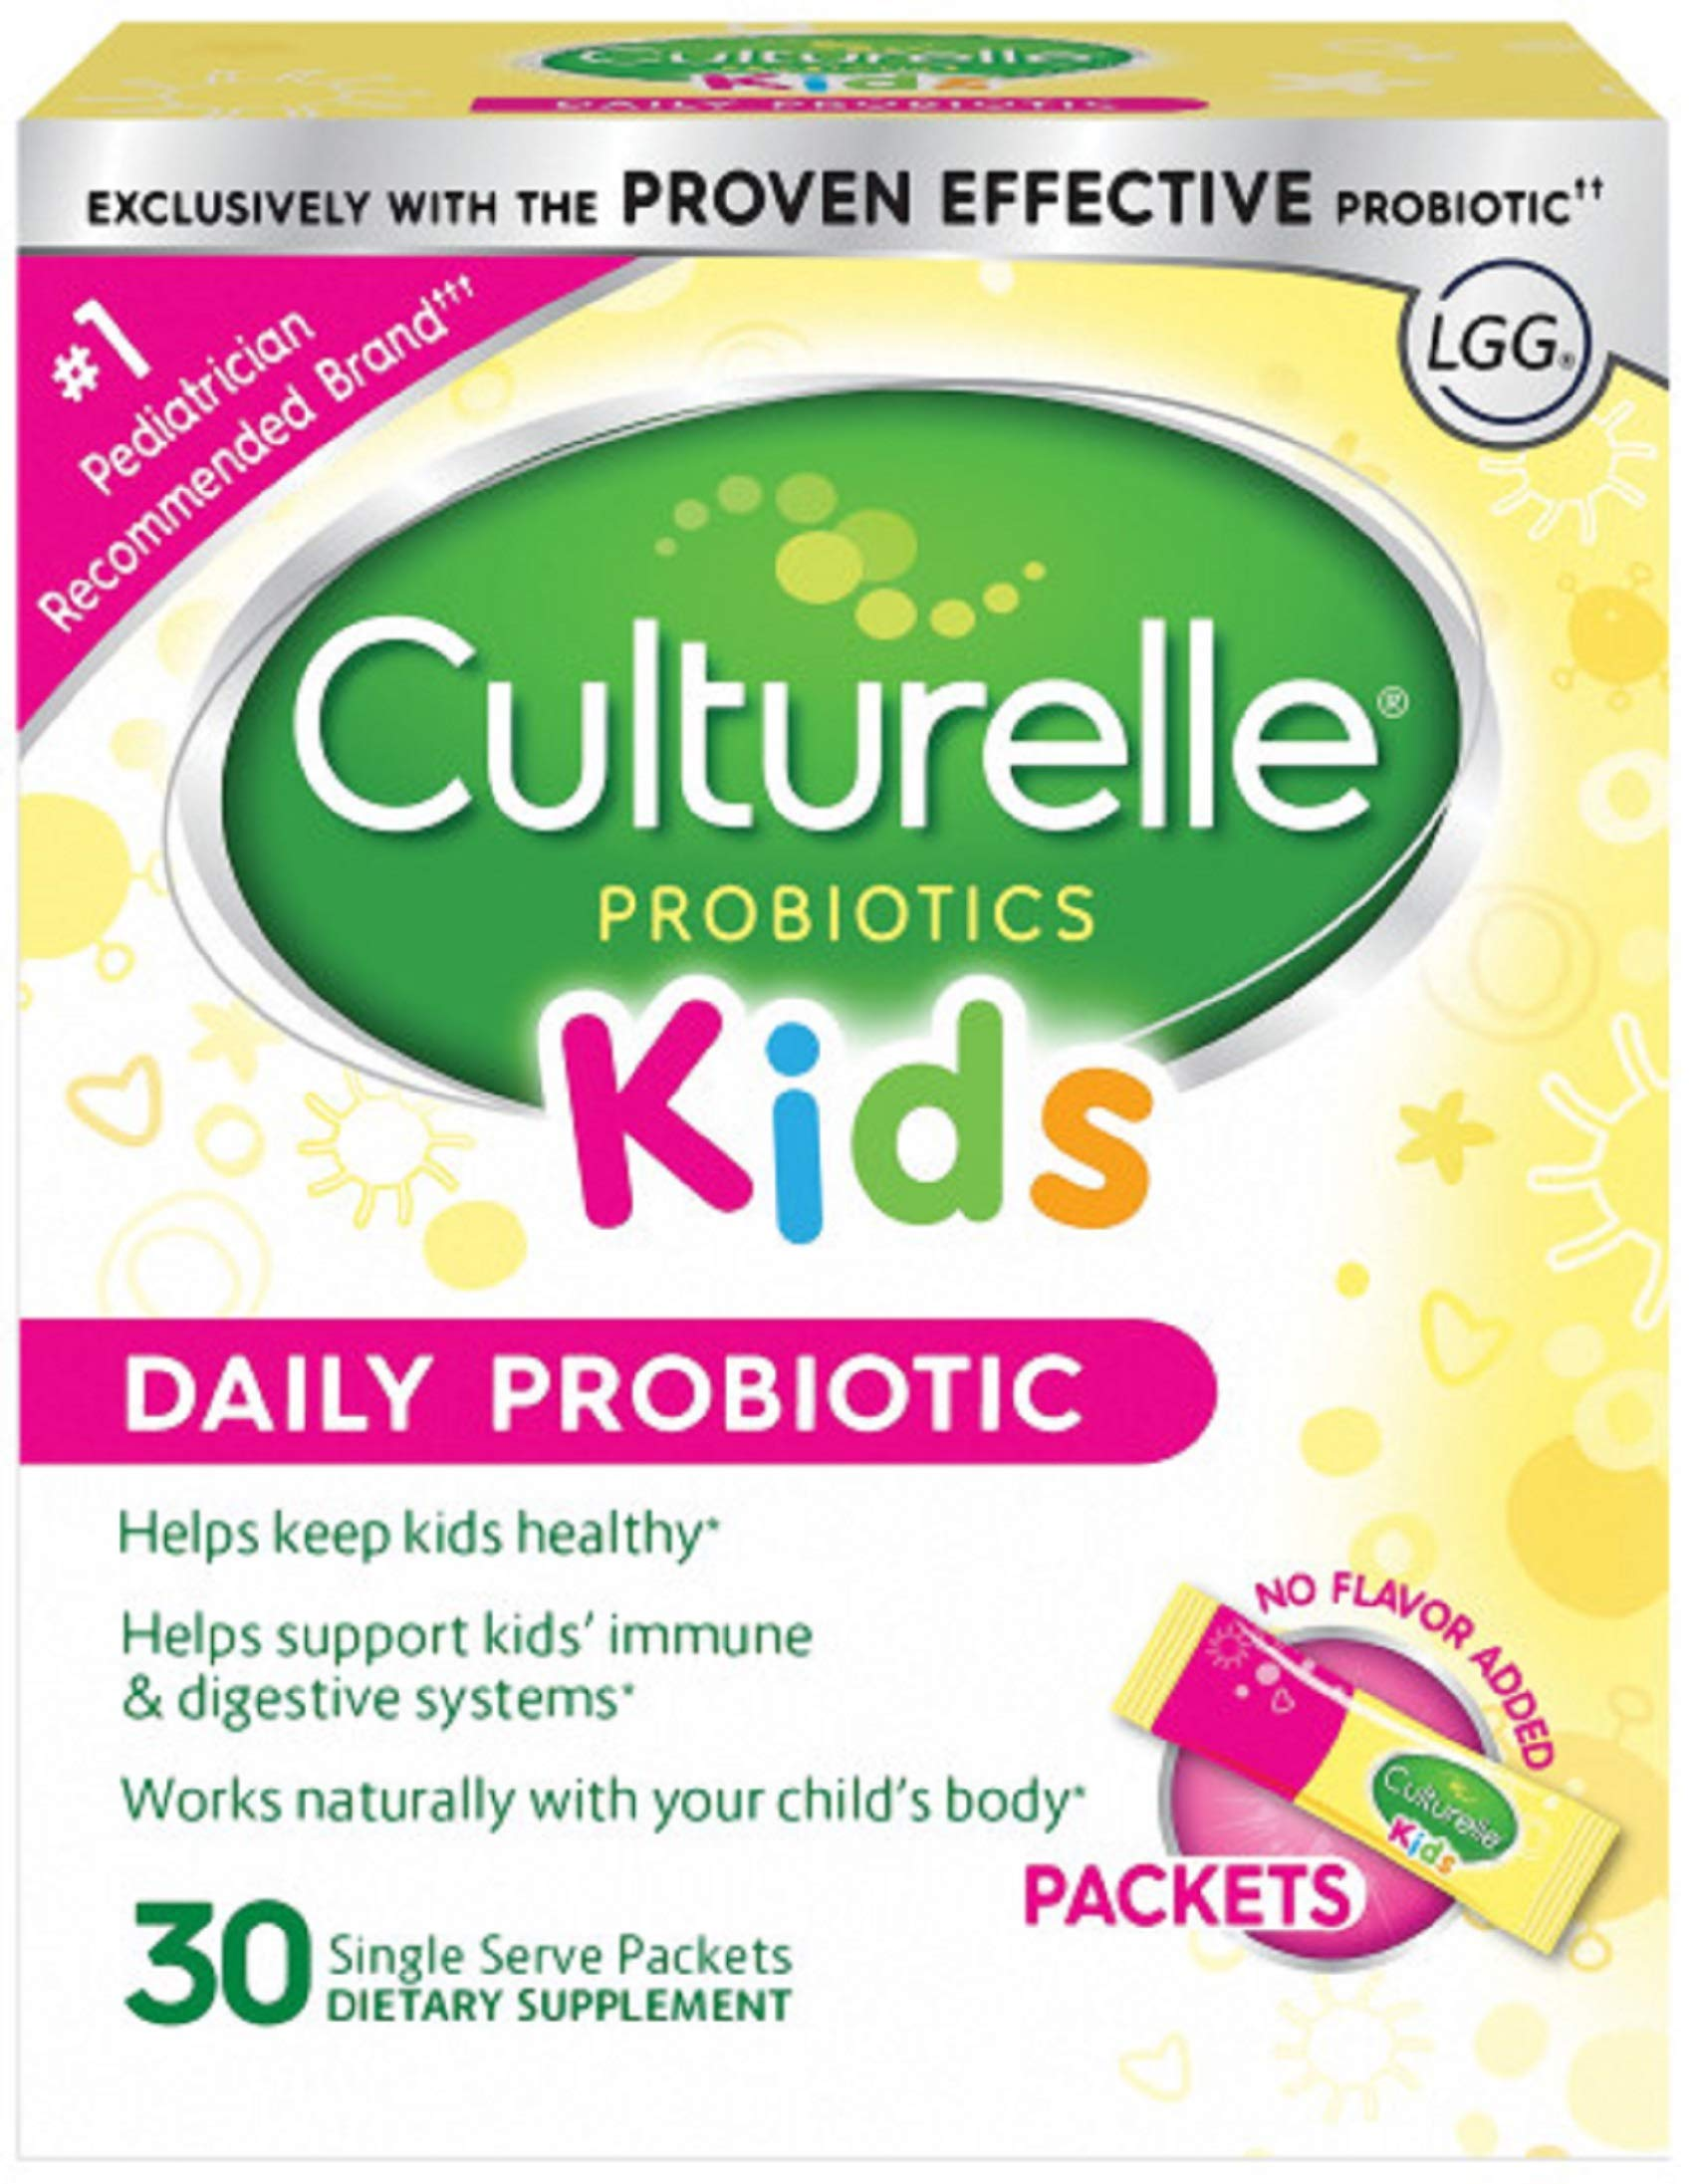 Culturelle Kids Packets Daily Probiotic Supplement | Helps Support a Healthy Immune & Digestive System* | #1 Pediatrician Recommended Brand††† | 30 Single Packets | Package May Vary by Culturelle